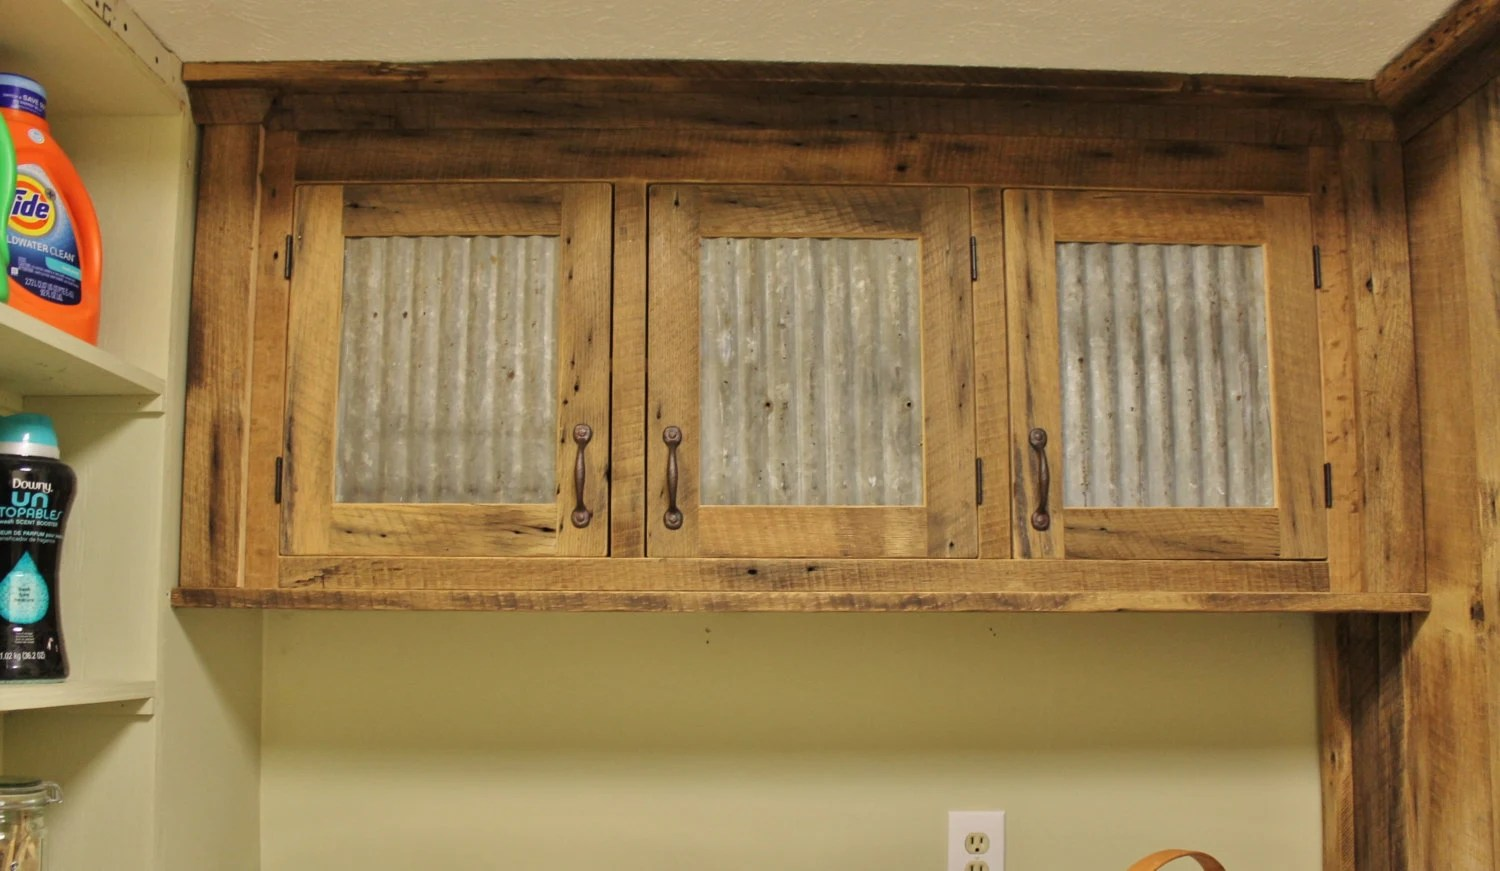 Barn Board Kitchen Cabinets Rustic Upper Cabinet Reclaimed Barn Wood W Tin Doors